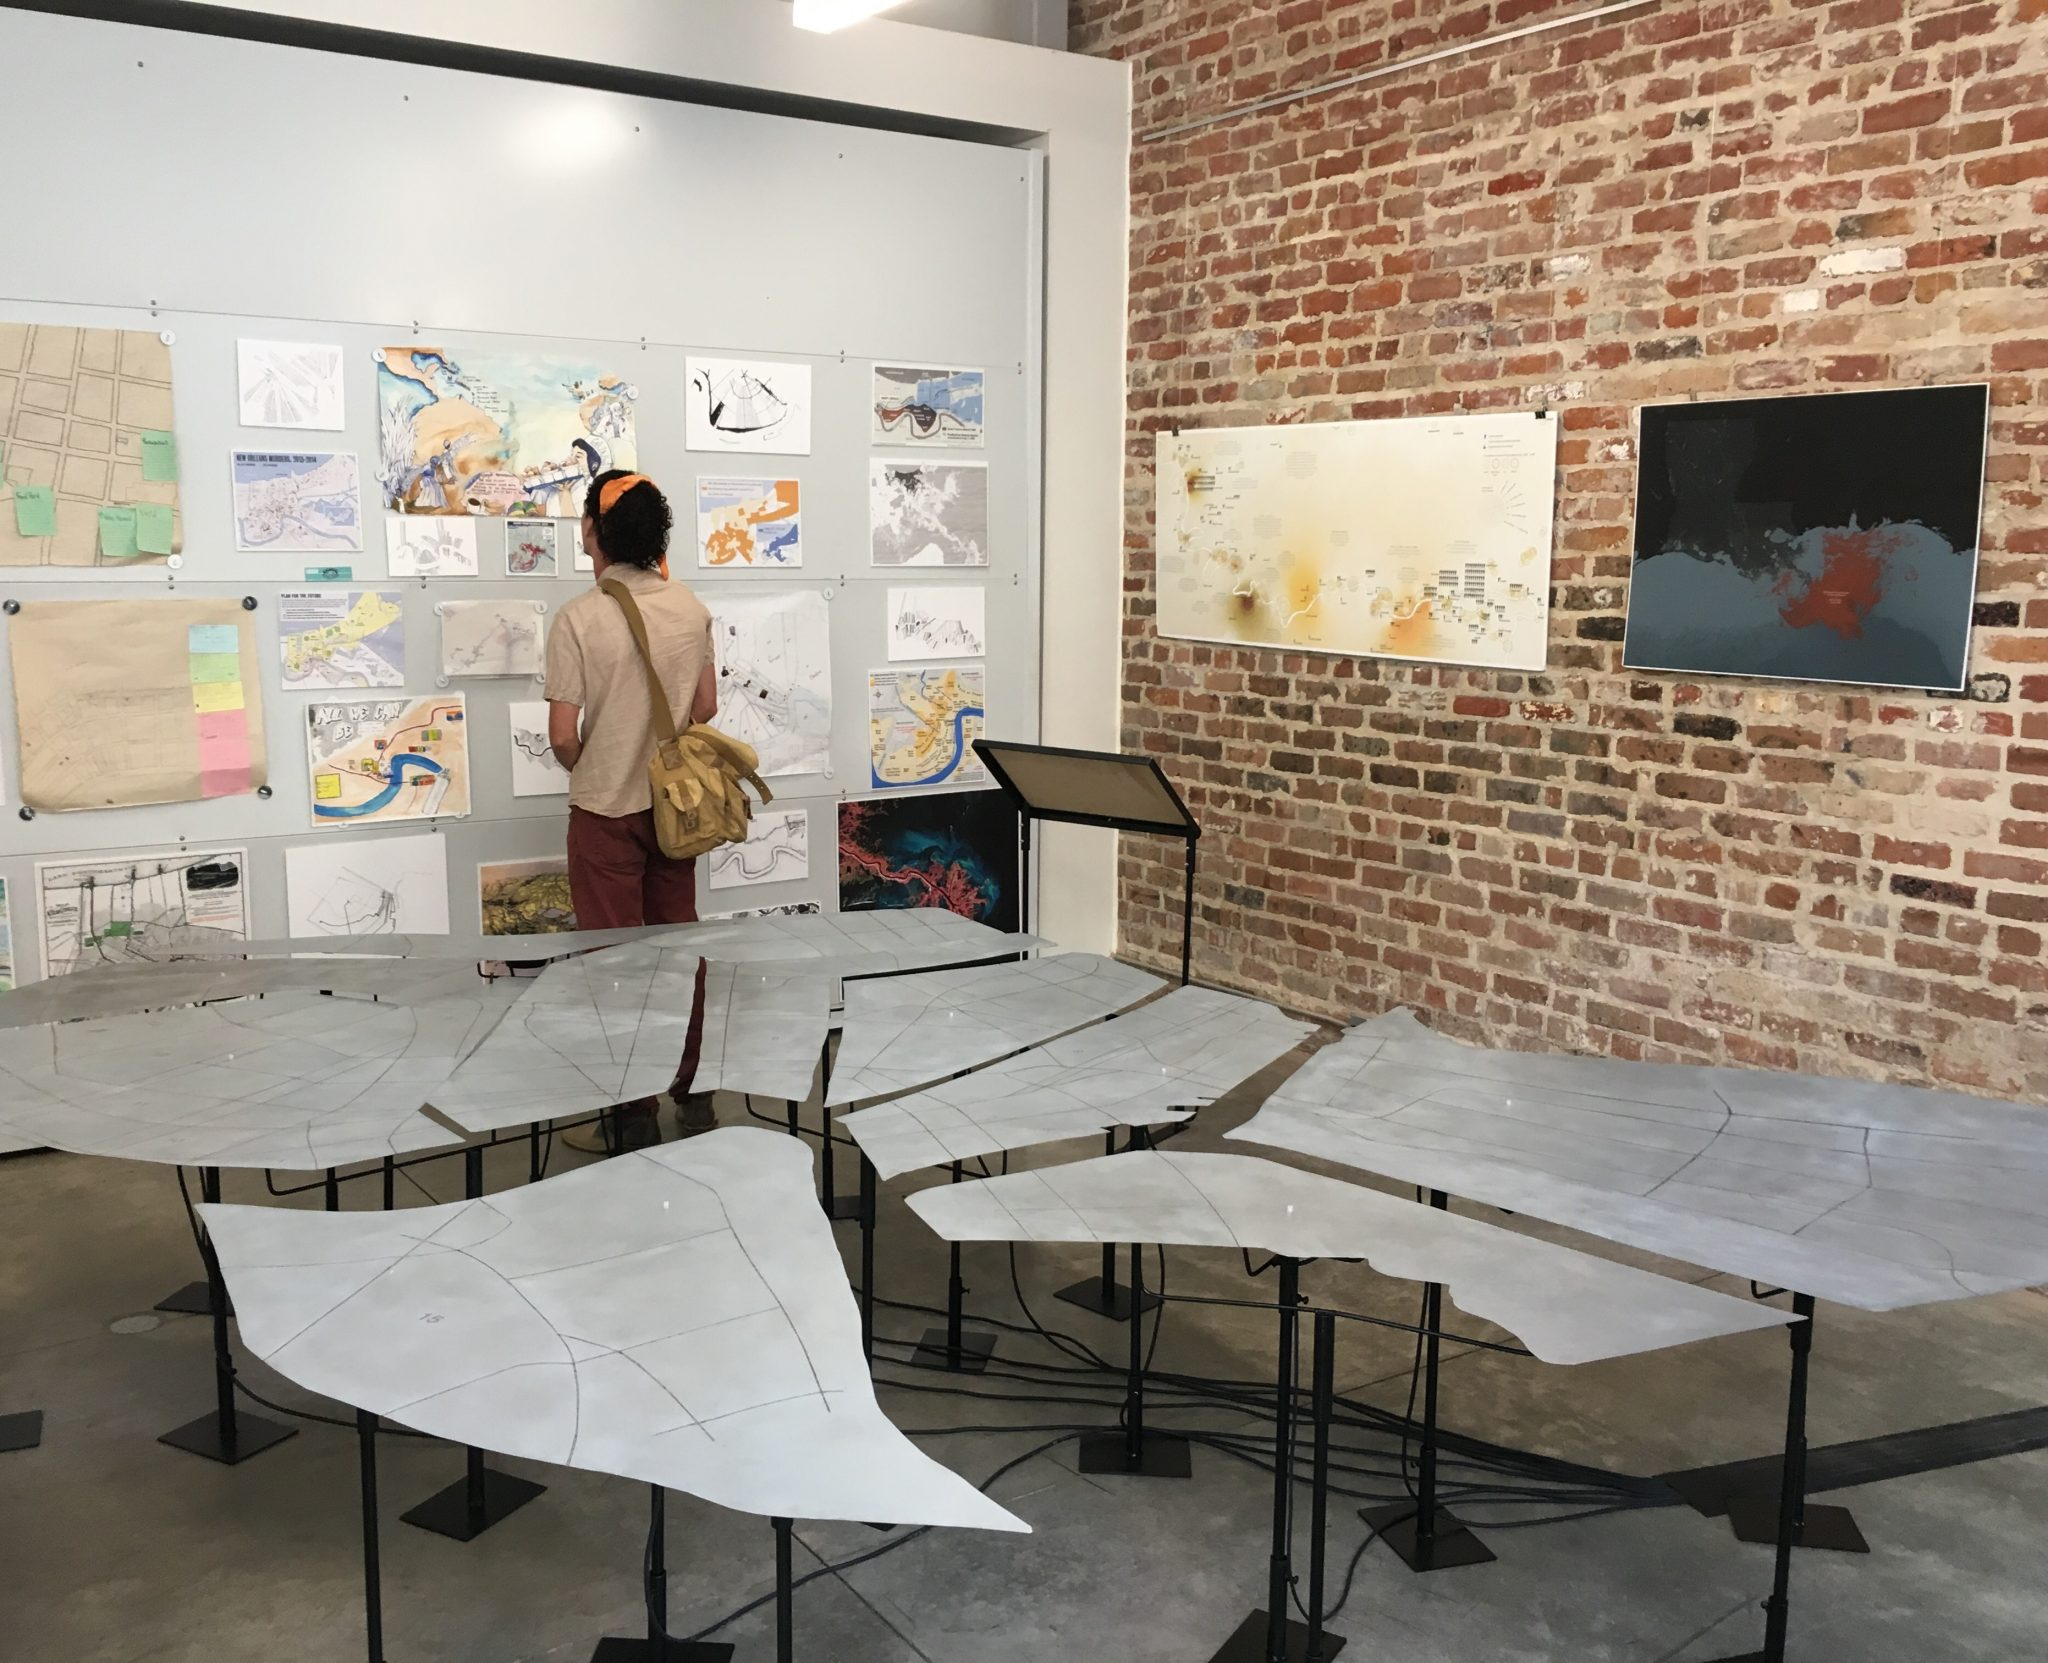 An individual looks at an exhibit of papers on a wall inside a small studio space with a brick wall on the right